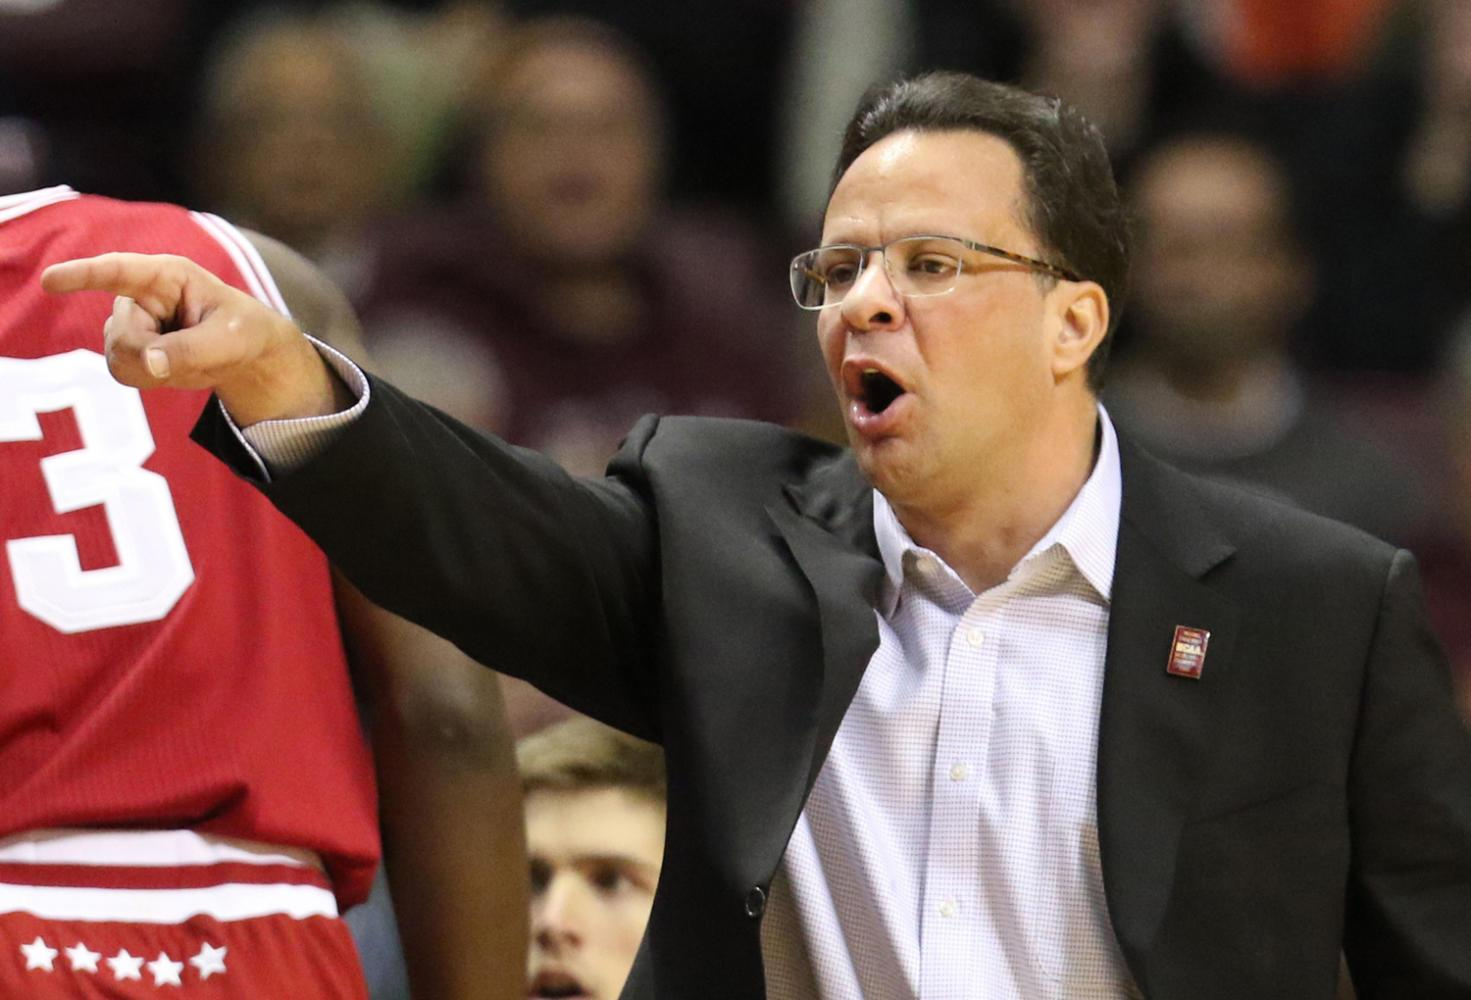 Then-Indiana head coach Tom Crean yells instructions to his players during the first half against Minnesota on Saturday, Jan. 16, 2016, at Williams Arena in Minneapolis. (David Joles/Minneapolis Star Tribune/TNS)